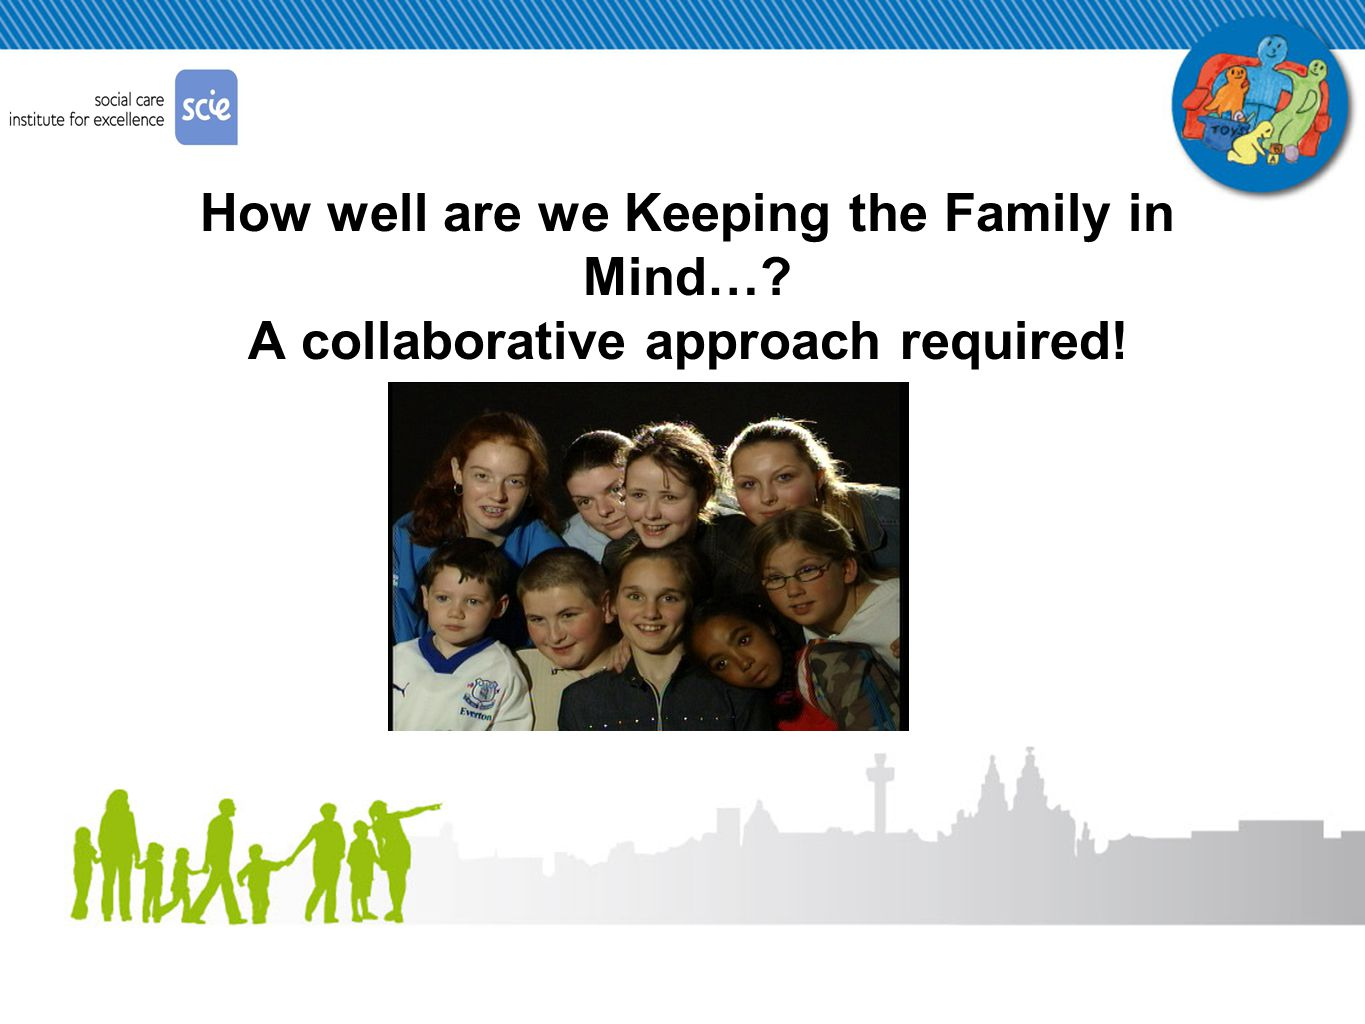 How well are we Keeping the Family in Mind… A collaborative approach required!